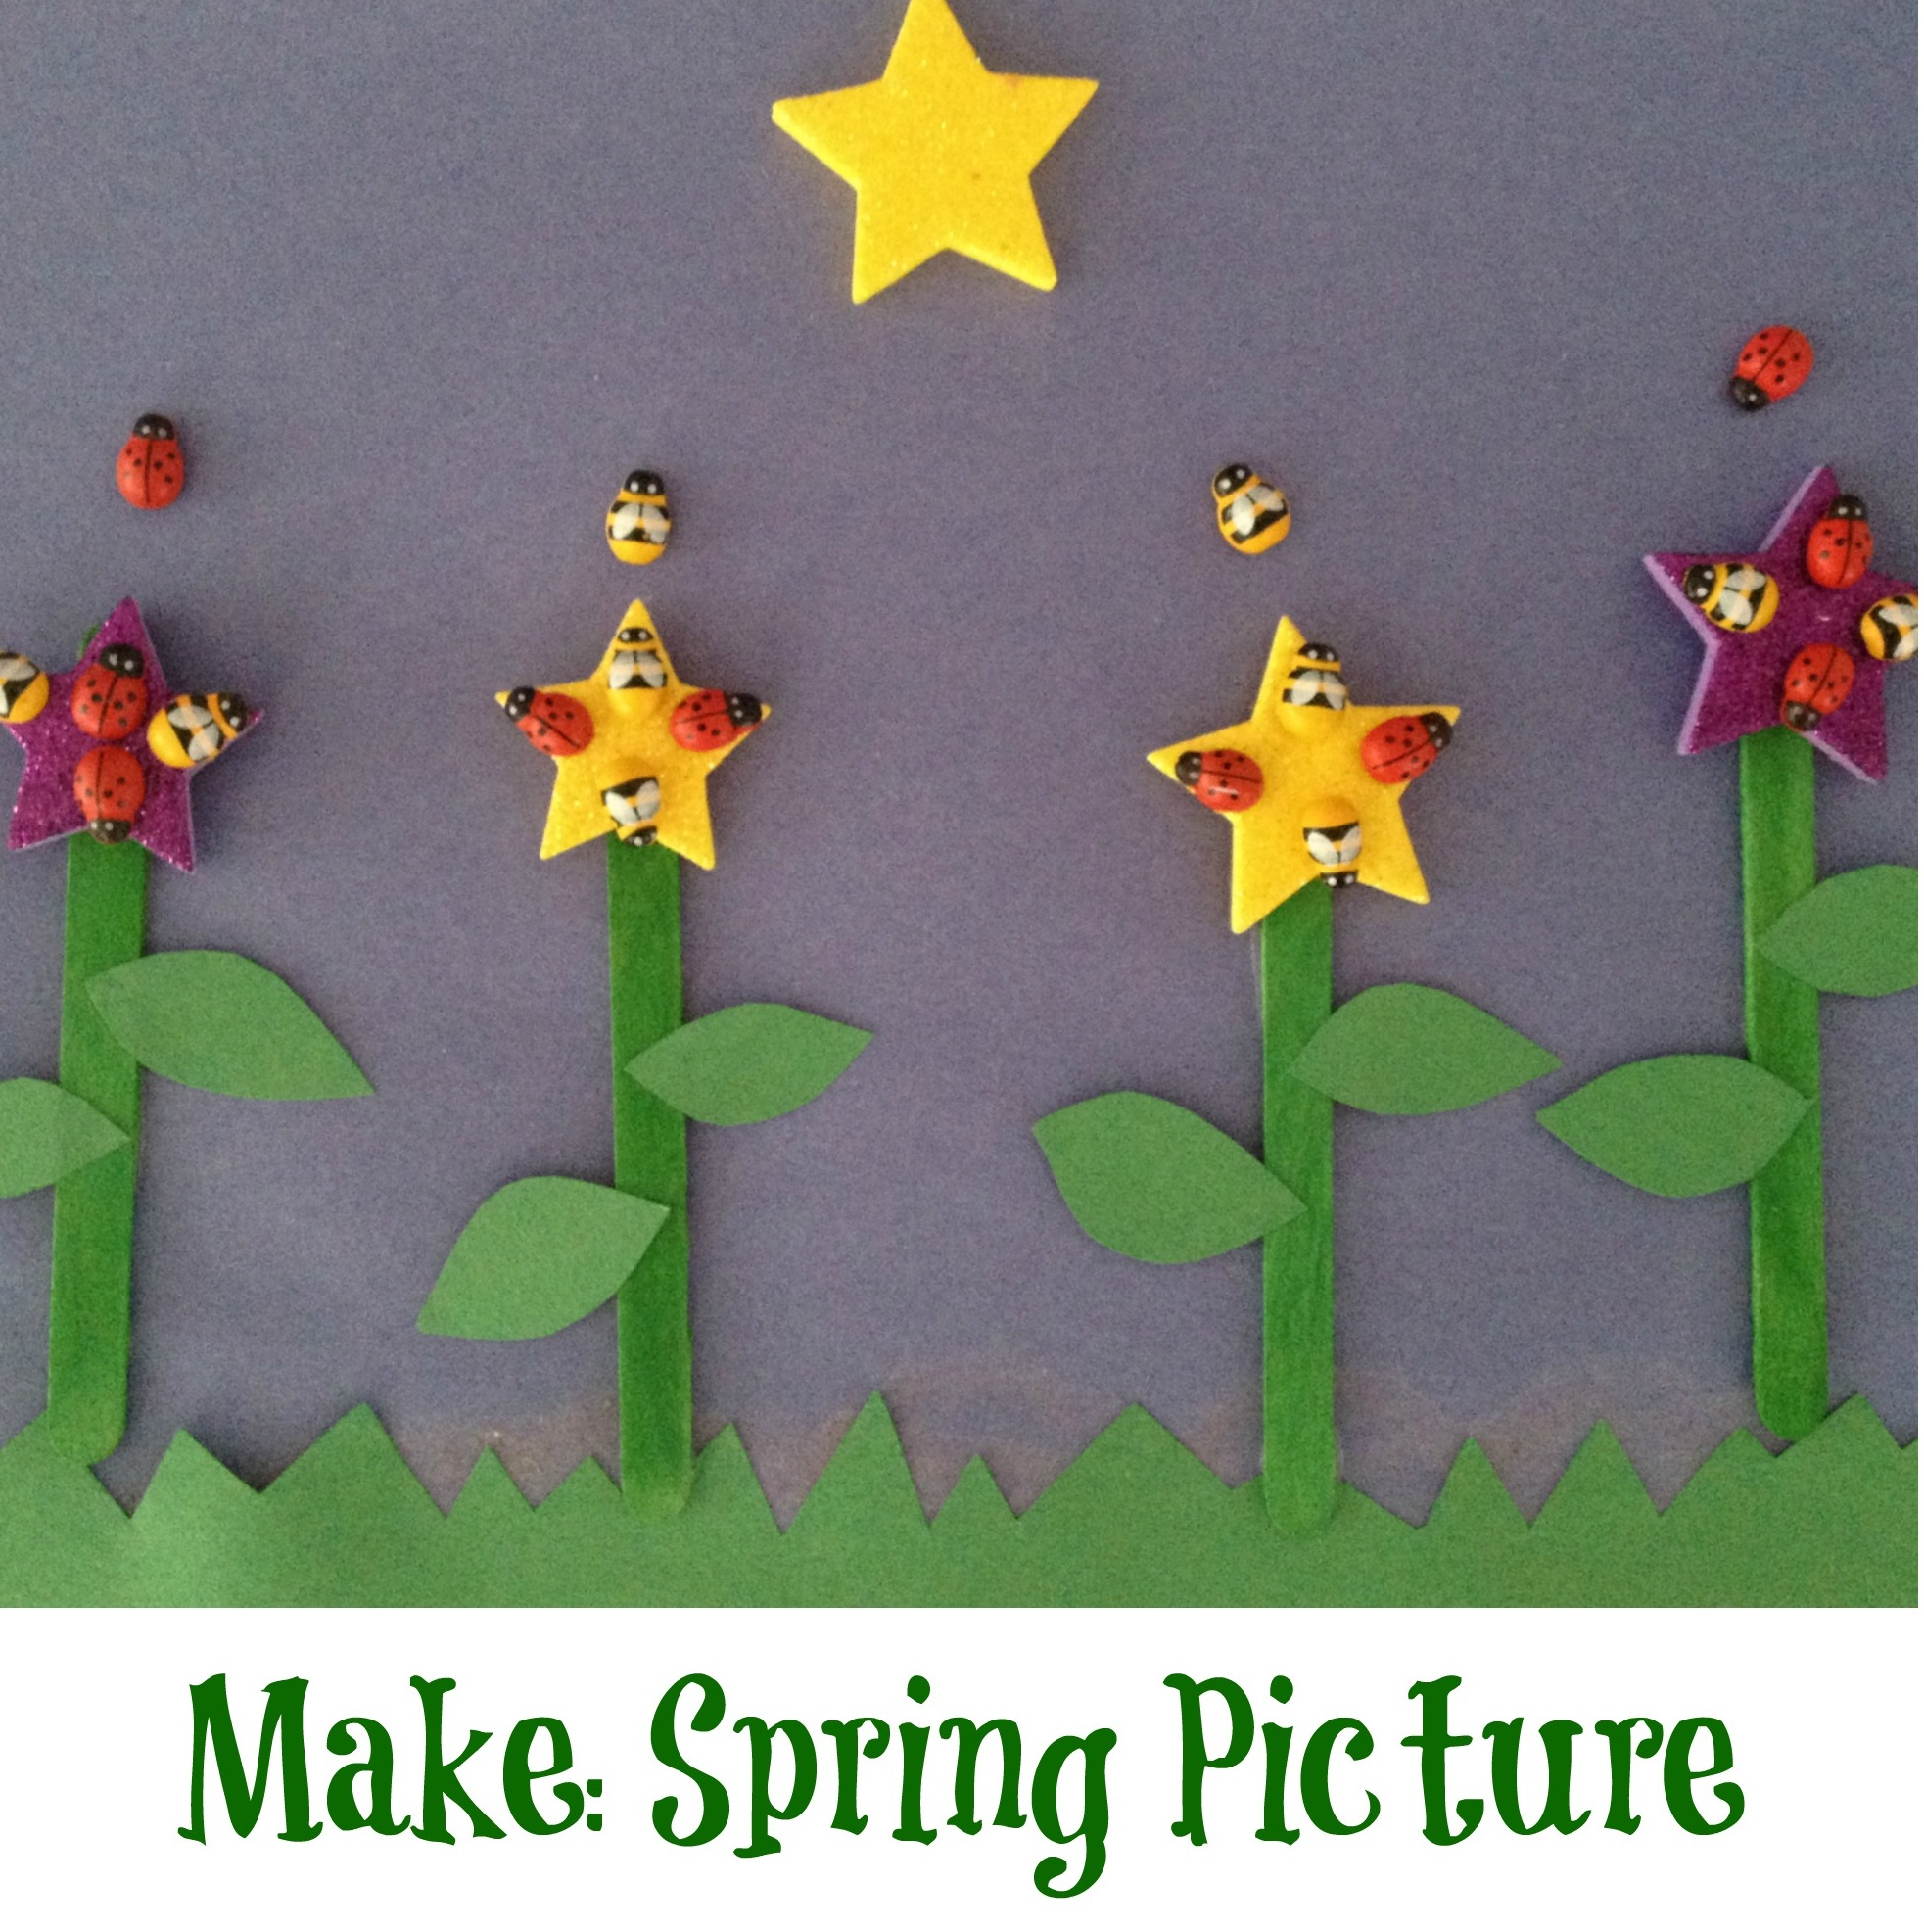 Make: Spring picture